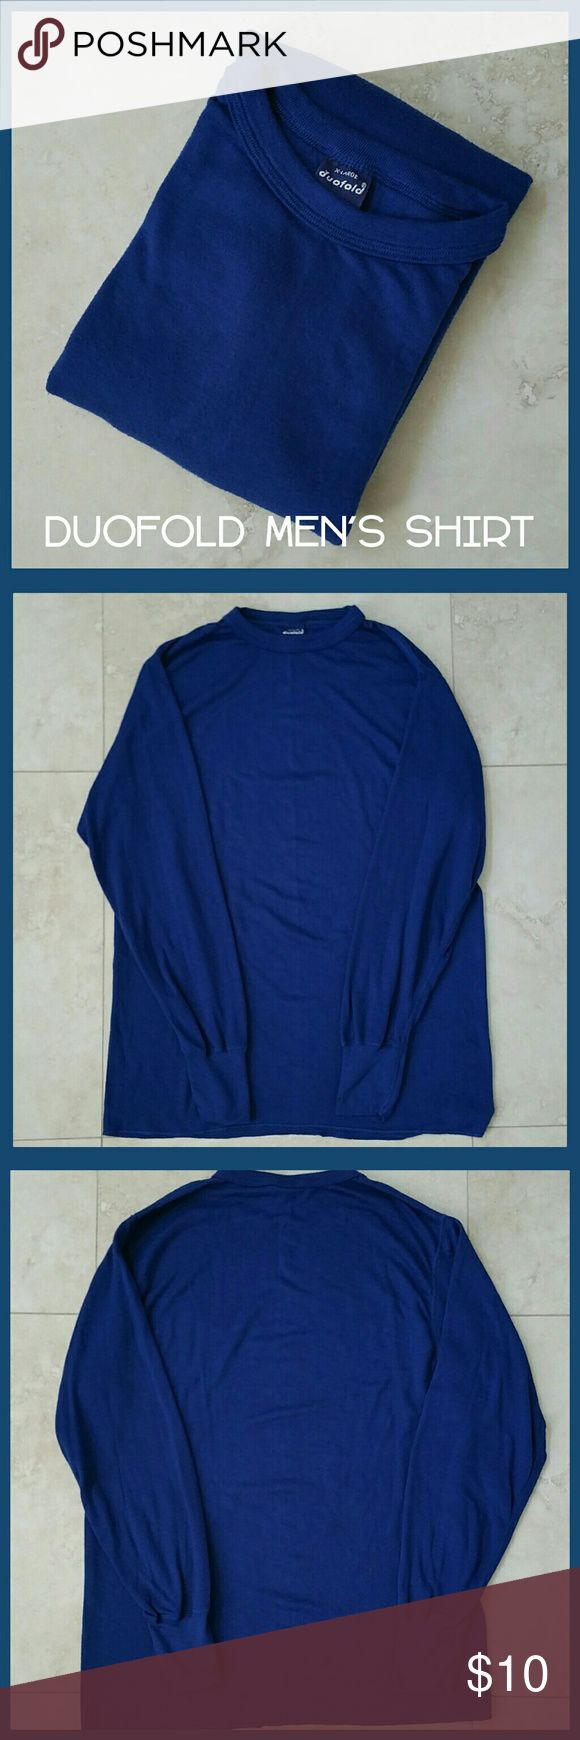 🚵 Duofold Men's Thermal Shirt Blue Crew Neck XL * Duofold men's mid-weight thermal shirt. Crew neck. Soft material. Wear as a base layer or by itself. * Size XL. * 100% thermostat polyester. * Good used condition. Minor pilling of fabric. Duofold Shirts Tees - Long Sleeve